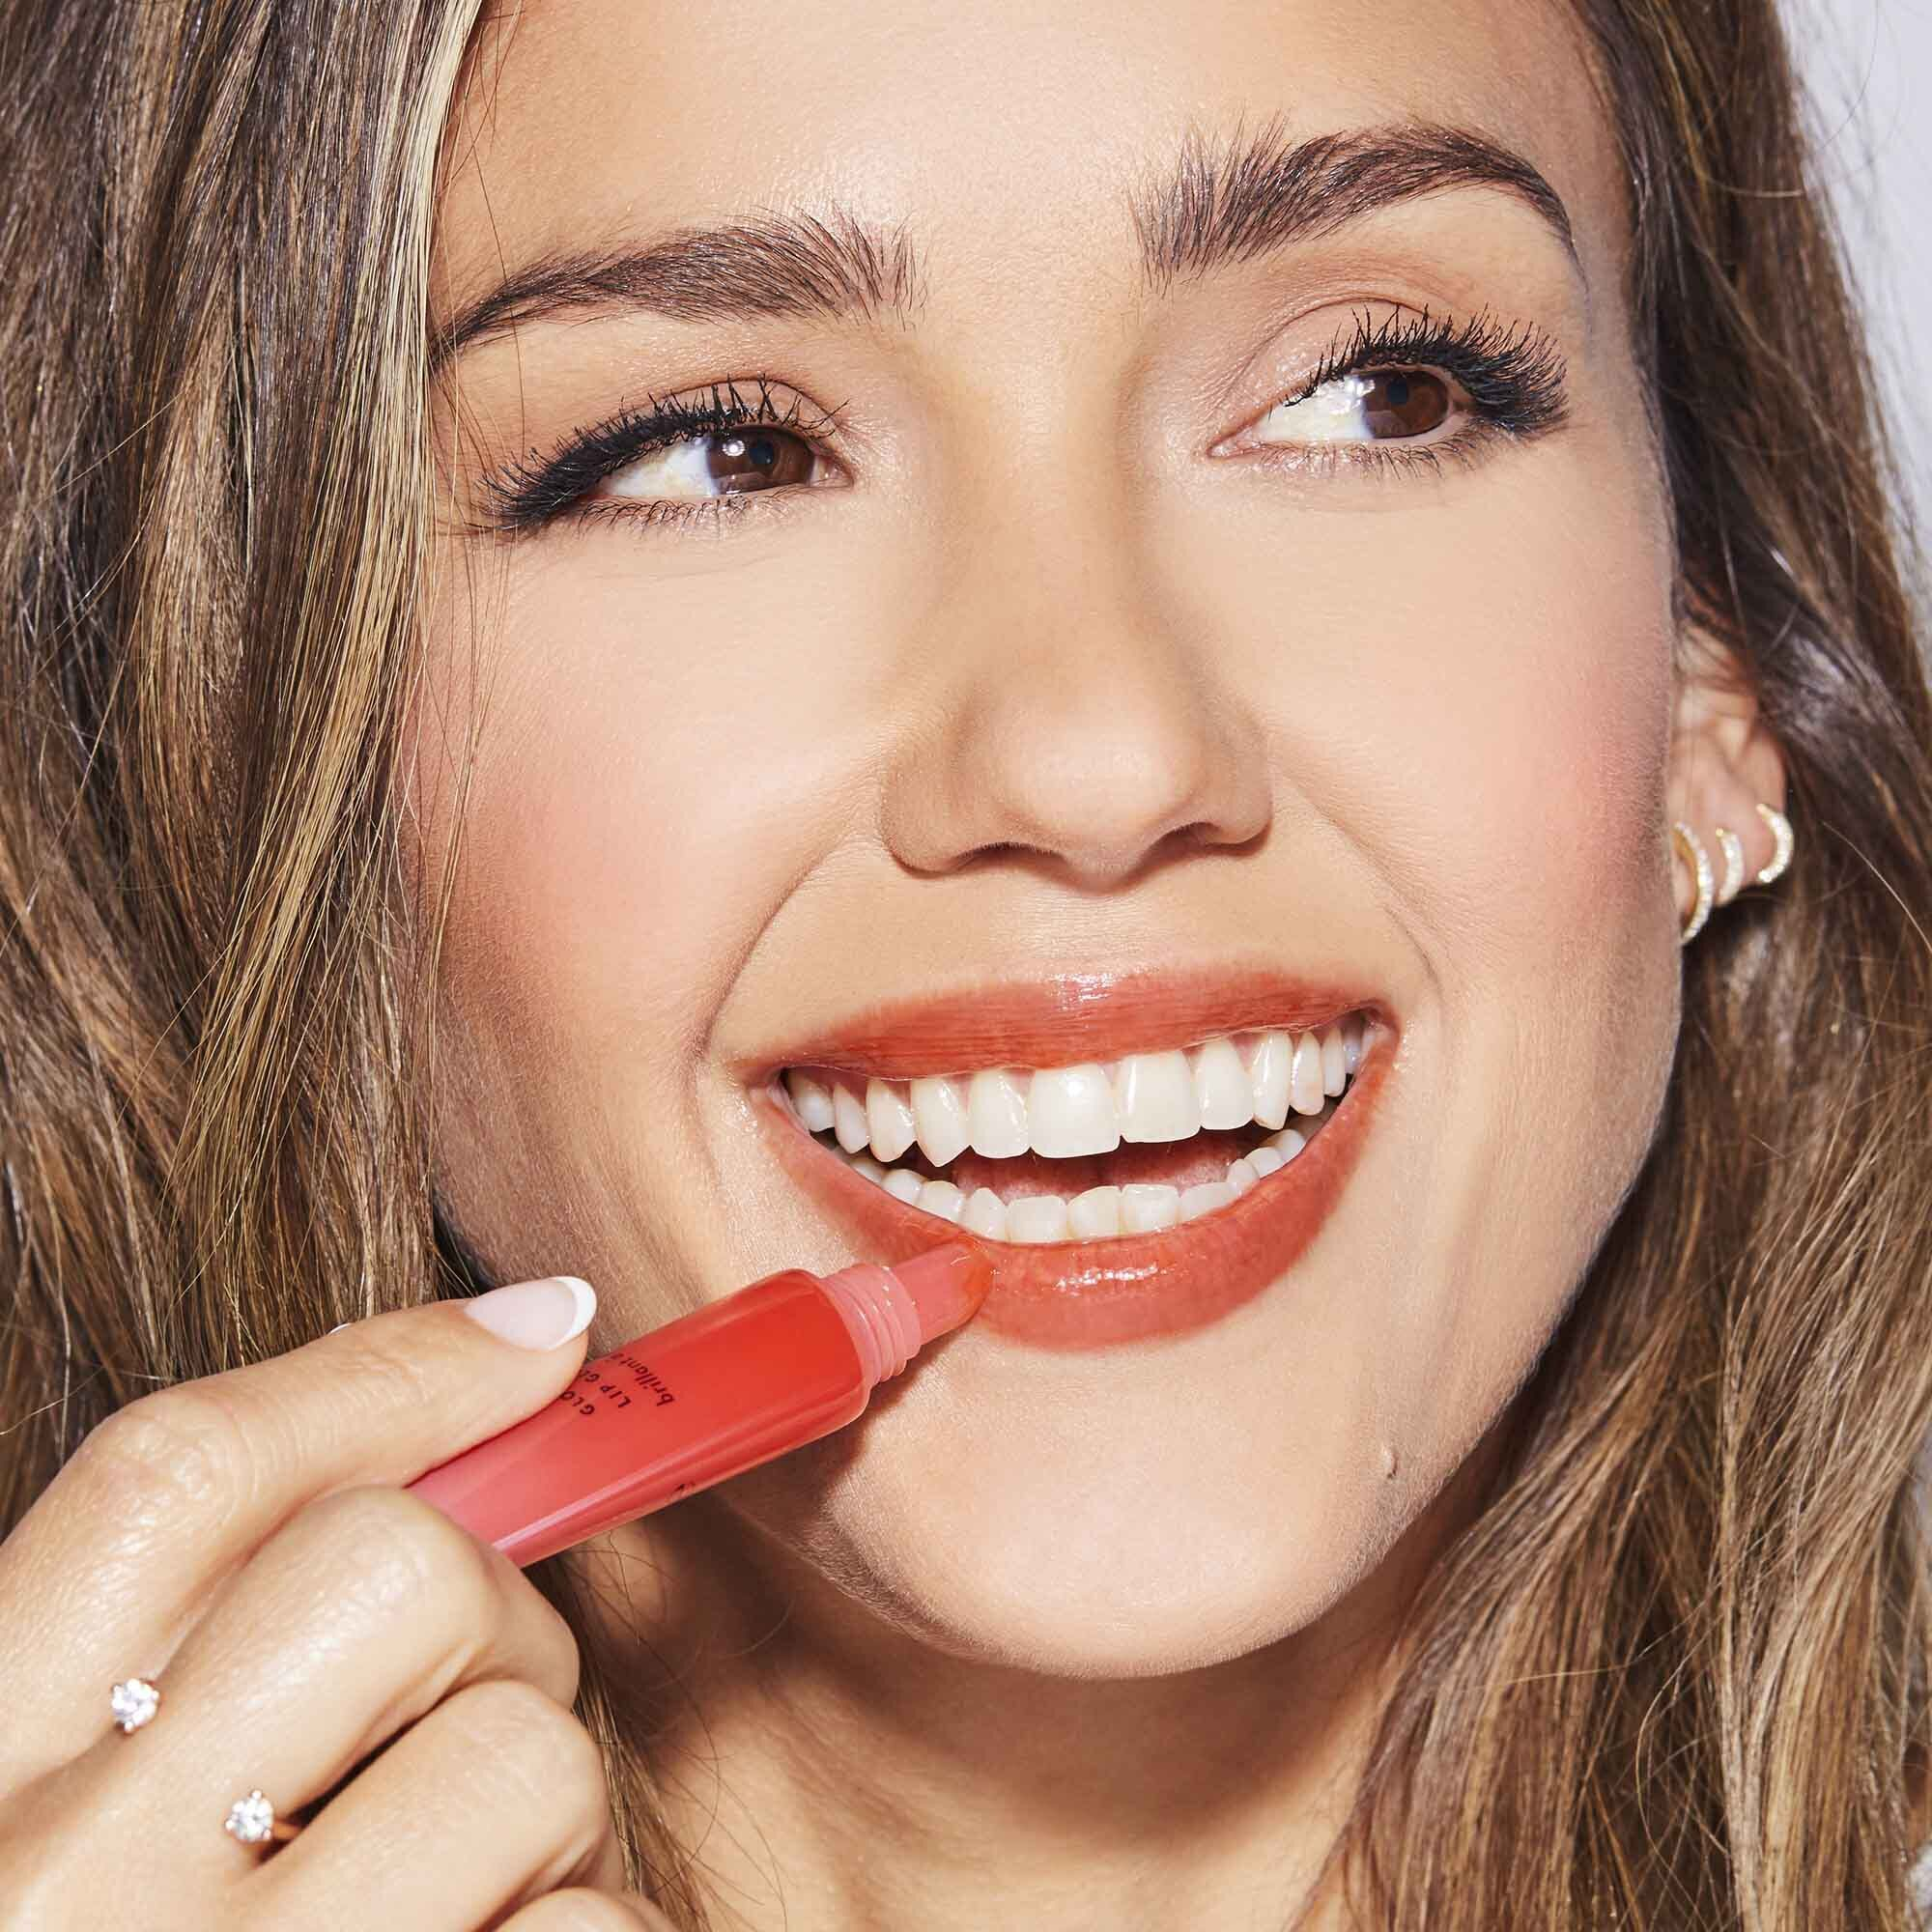 Jessica Alba applying Gloss C Lip Gloss